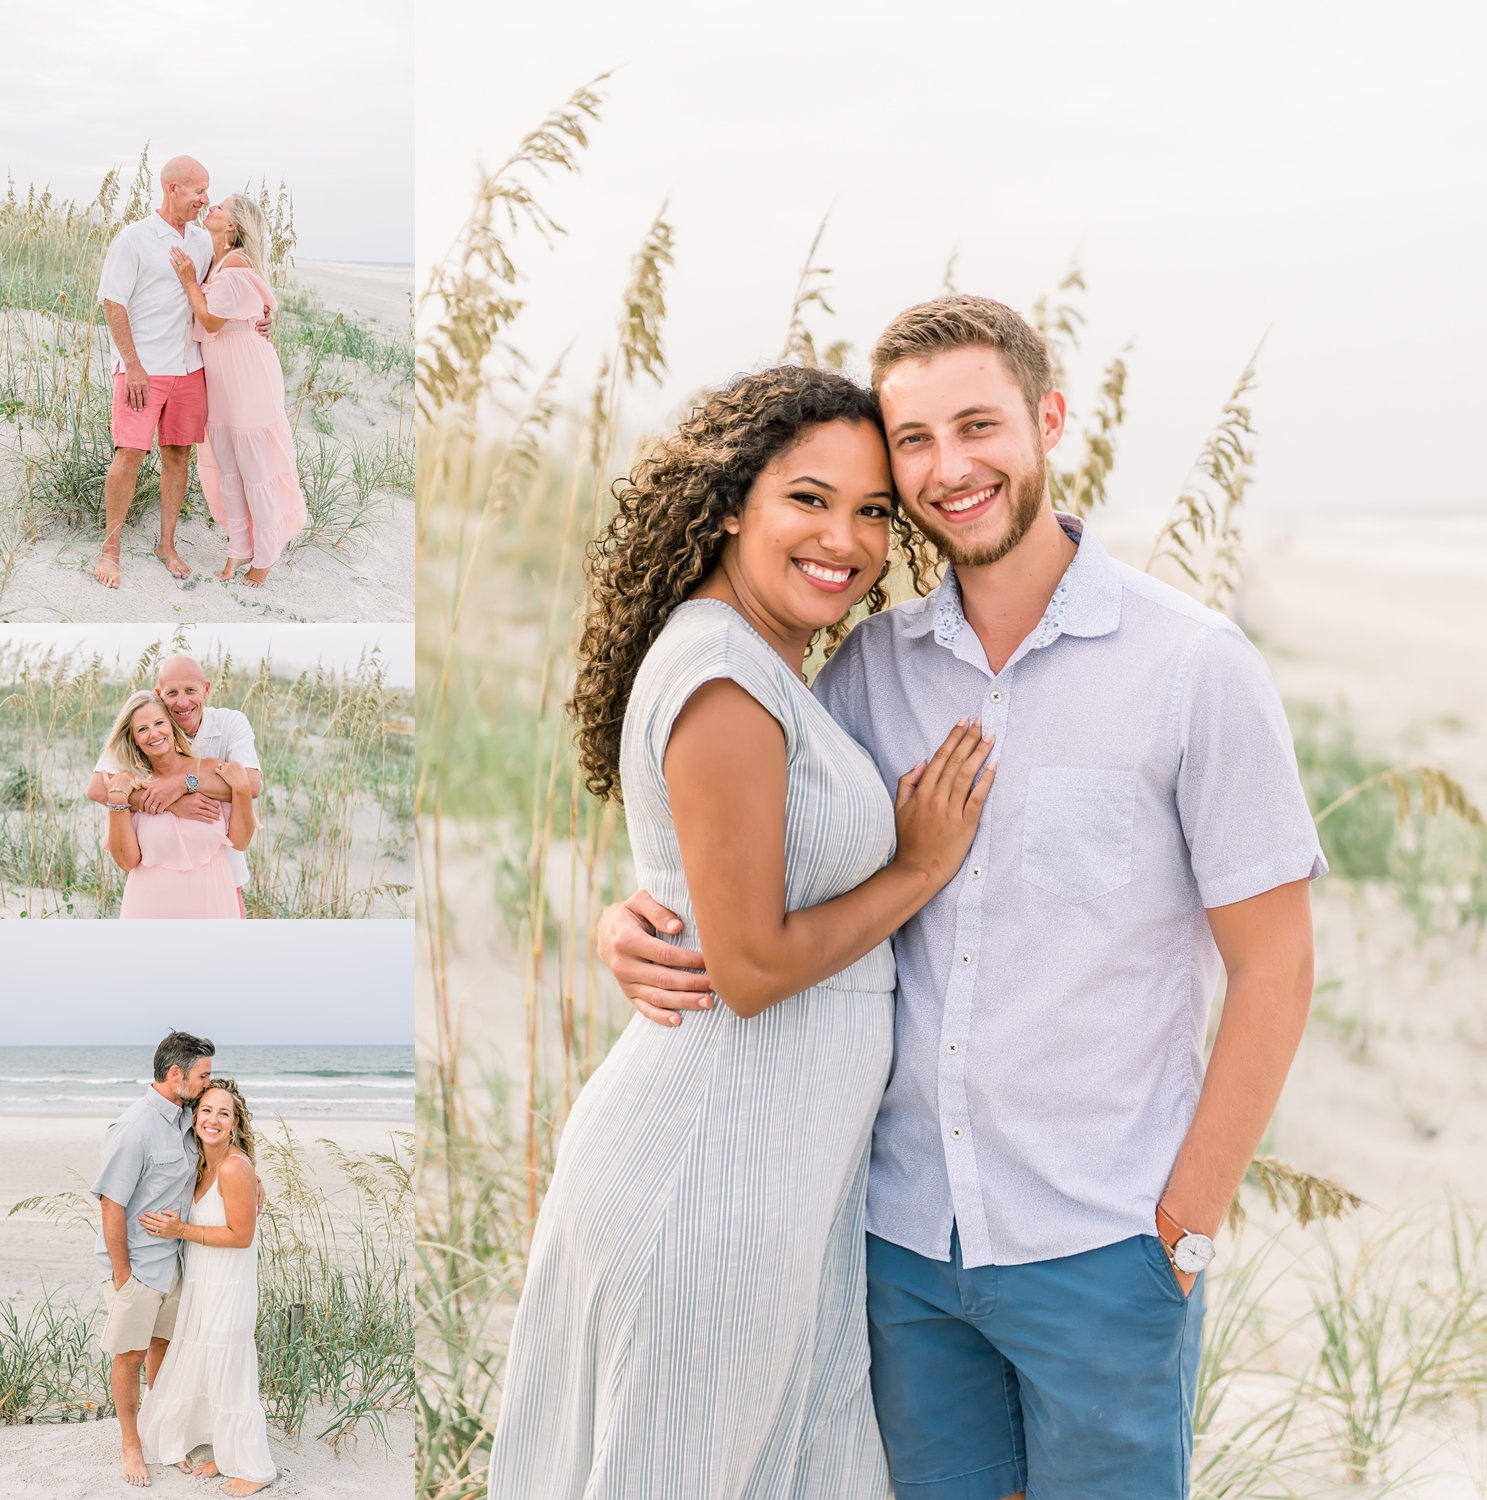 extended family couples portrait photography, St. Augustine Beach, FL